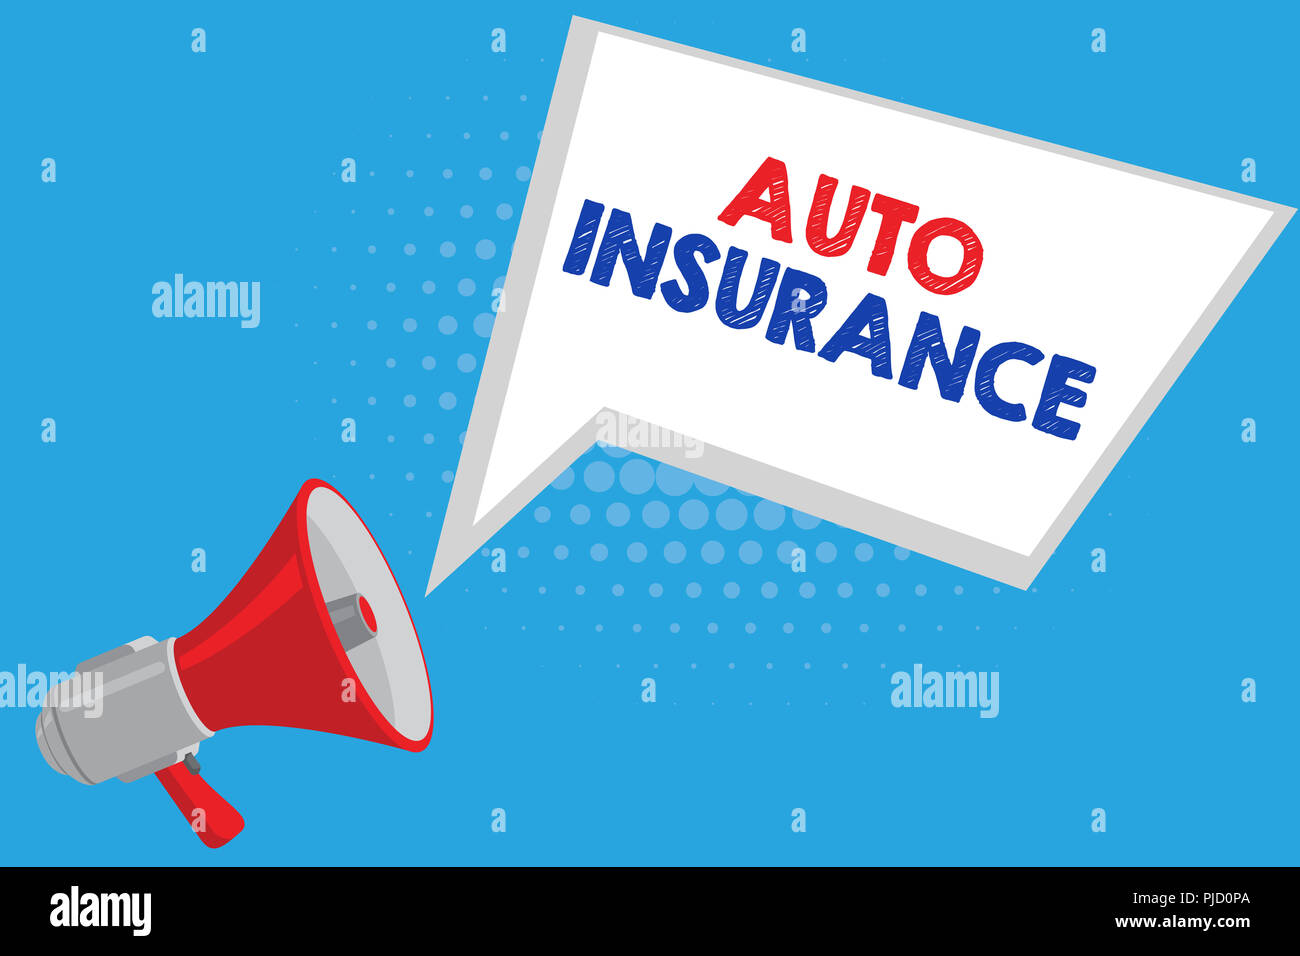 Handwriting Text Auto Insurance Concept Meaning Protection Against Financial Loss In Case Of Accident Stock Photo Alamy